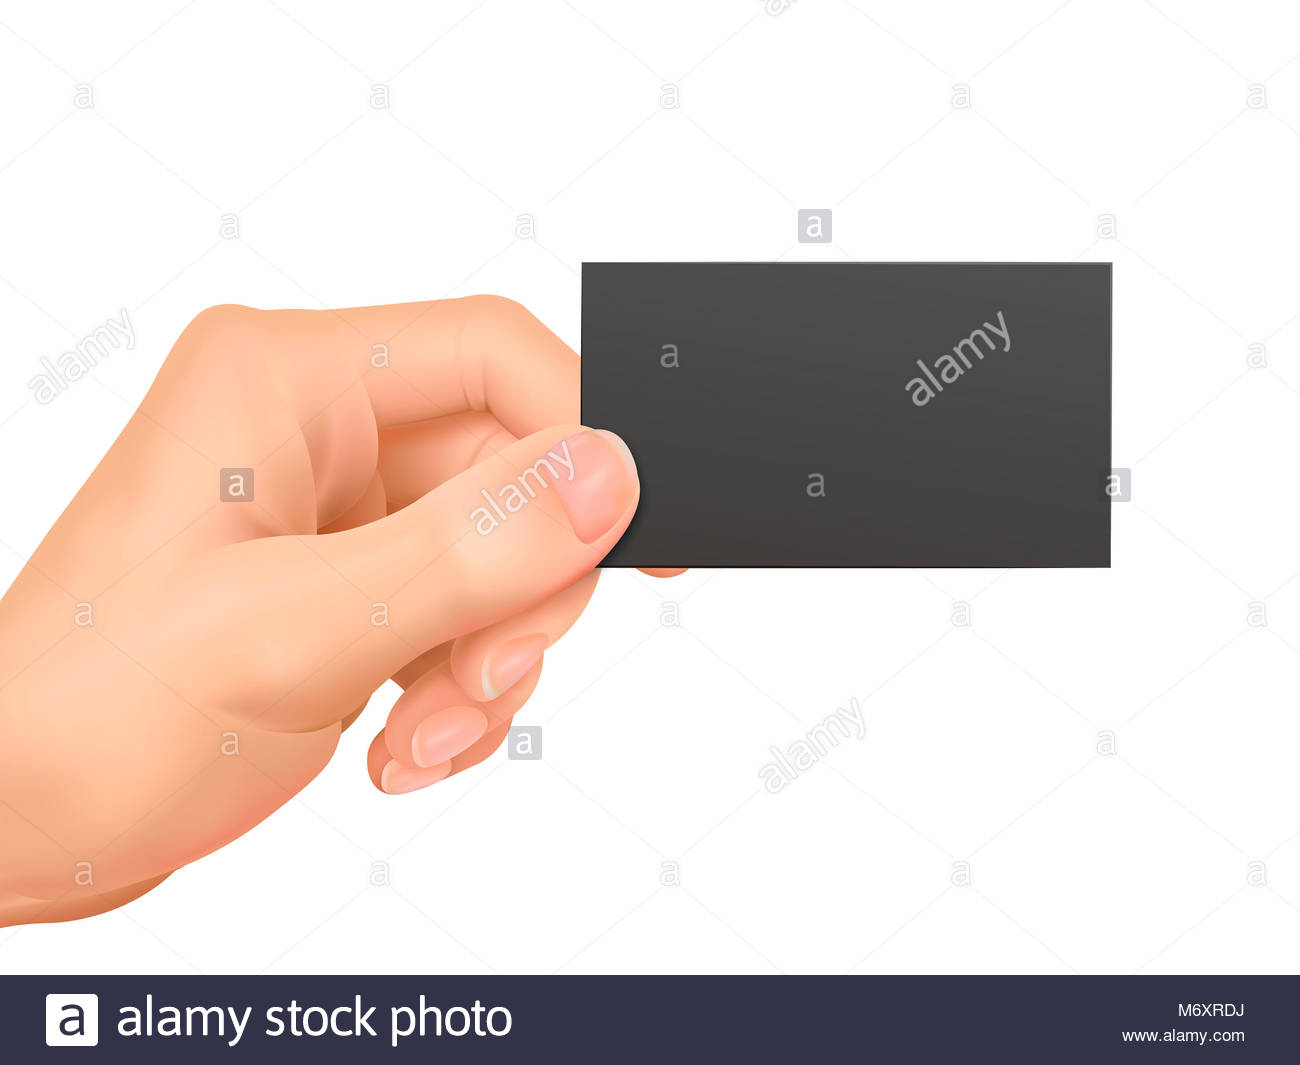 business concept: hand holding a business card over white background ...